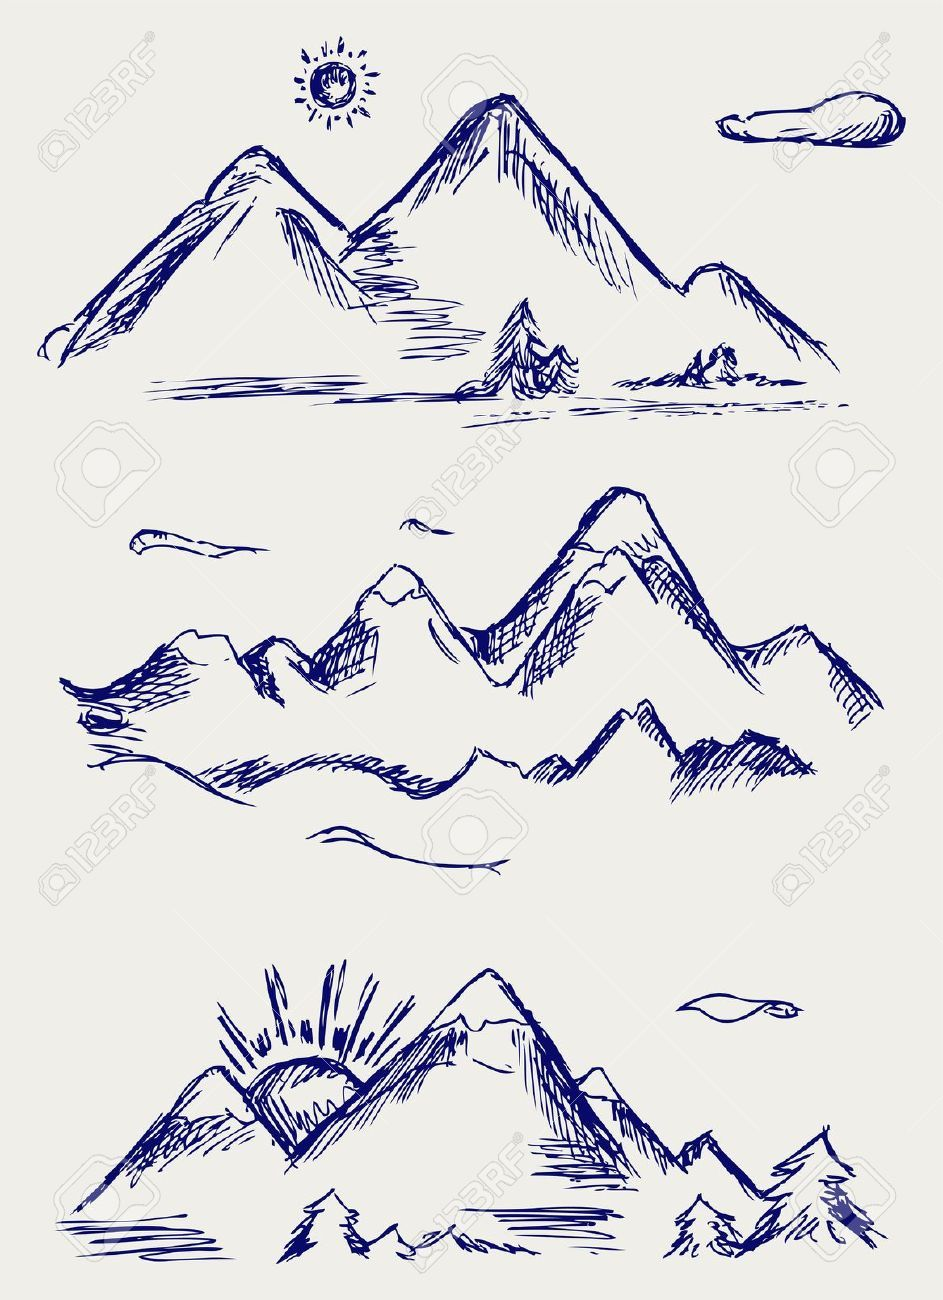 Scribble Google Drawing : Mountain doodle google search doodles pinterest